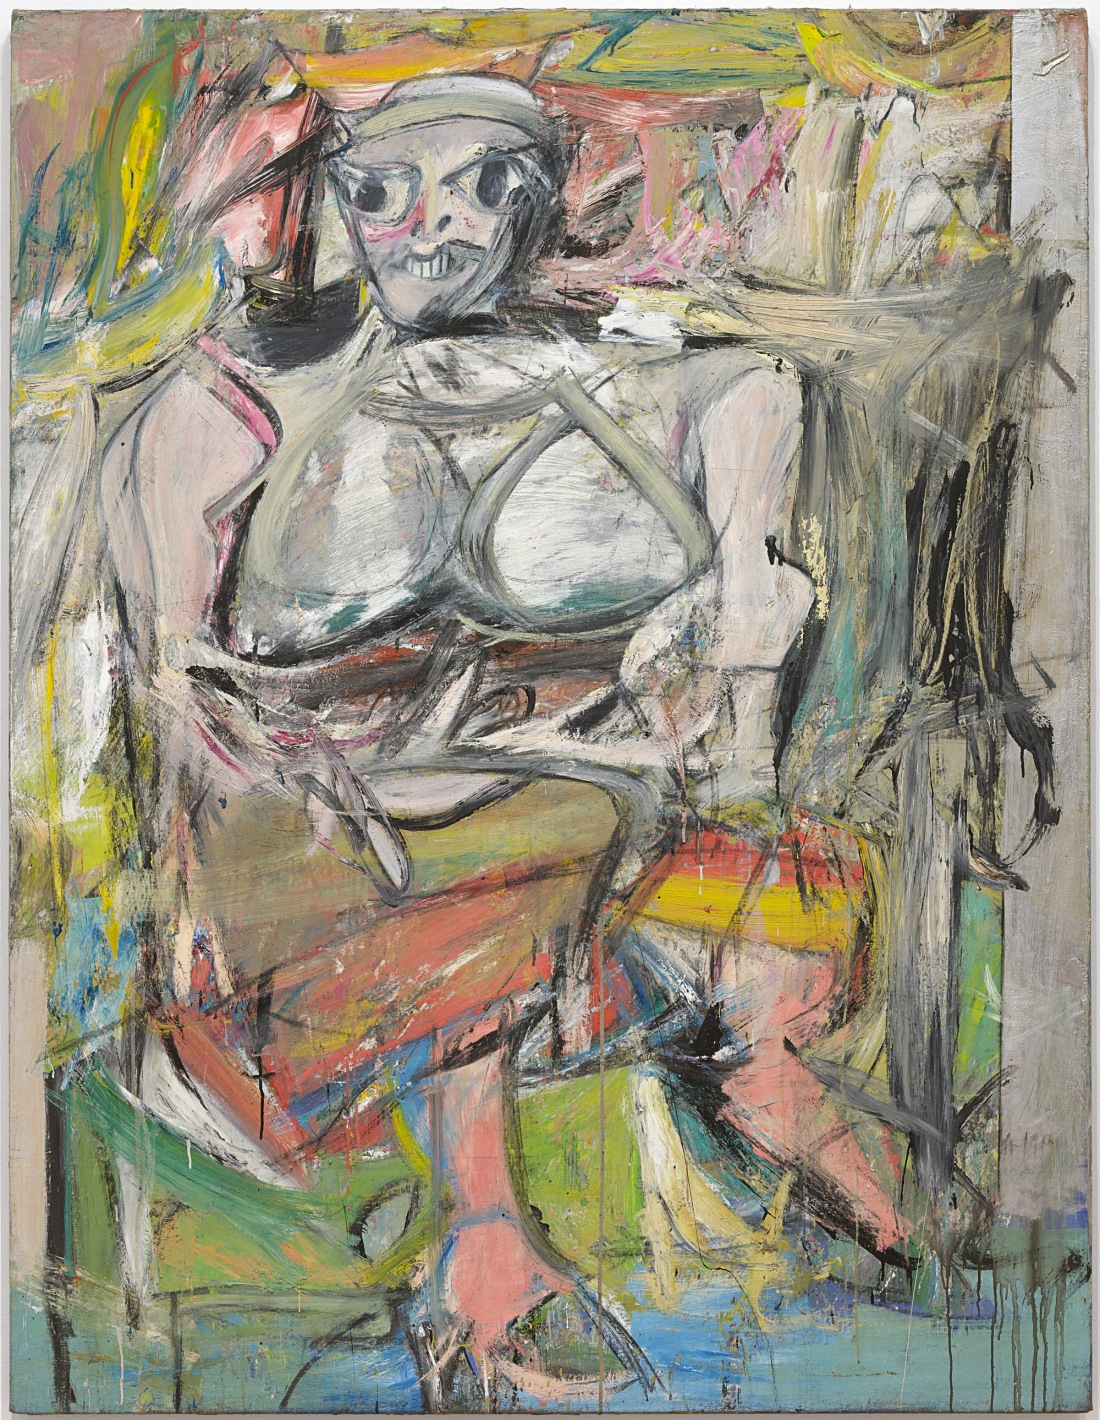 Willem de Kooning, Woman I, 1950-52. Collection of the Museum of Modern Art, New York.